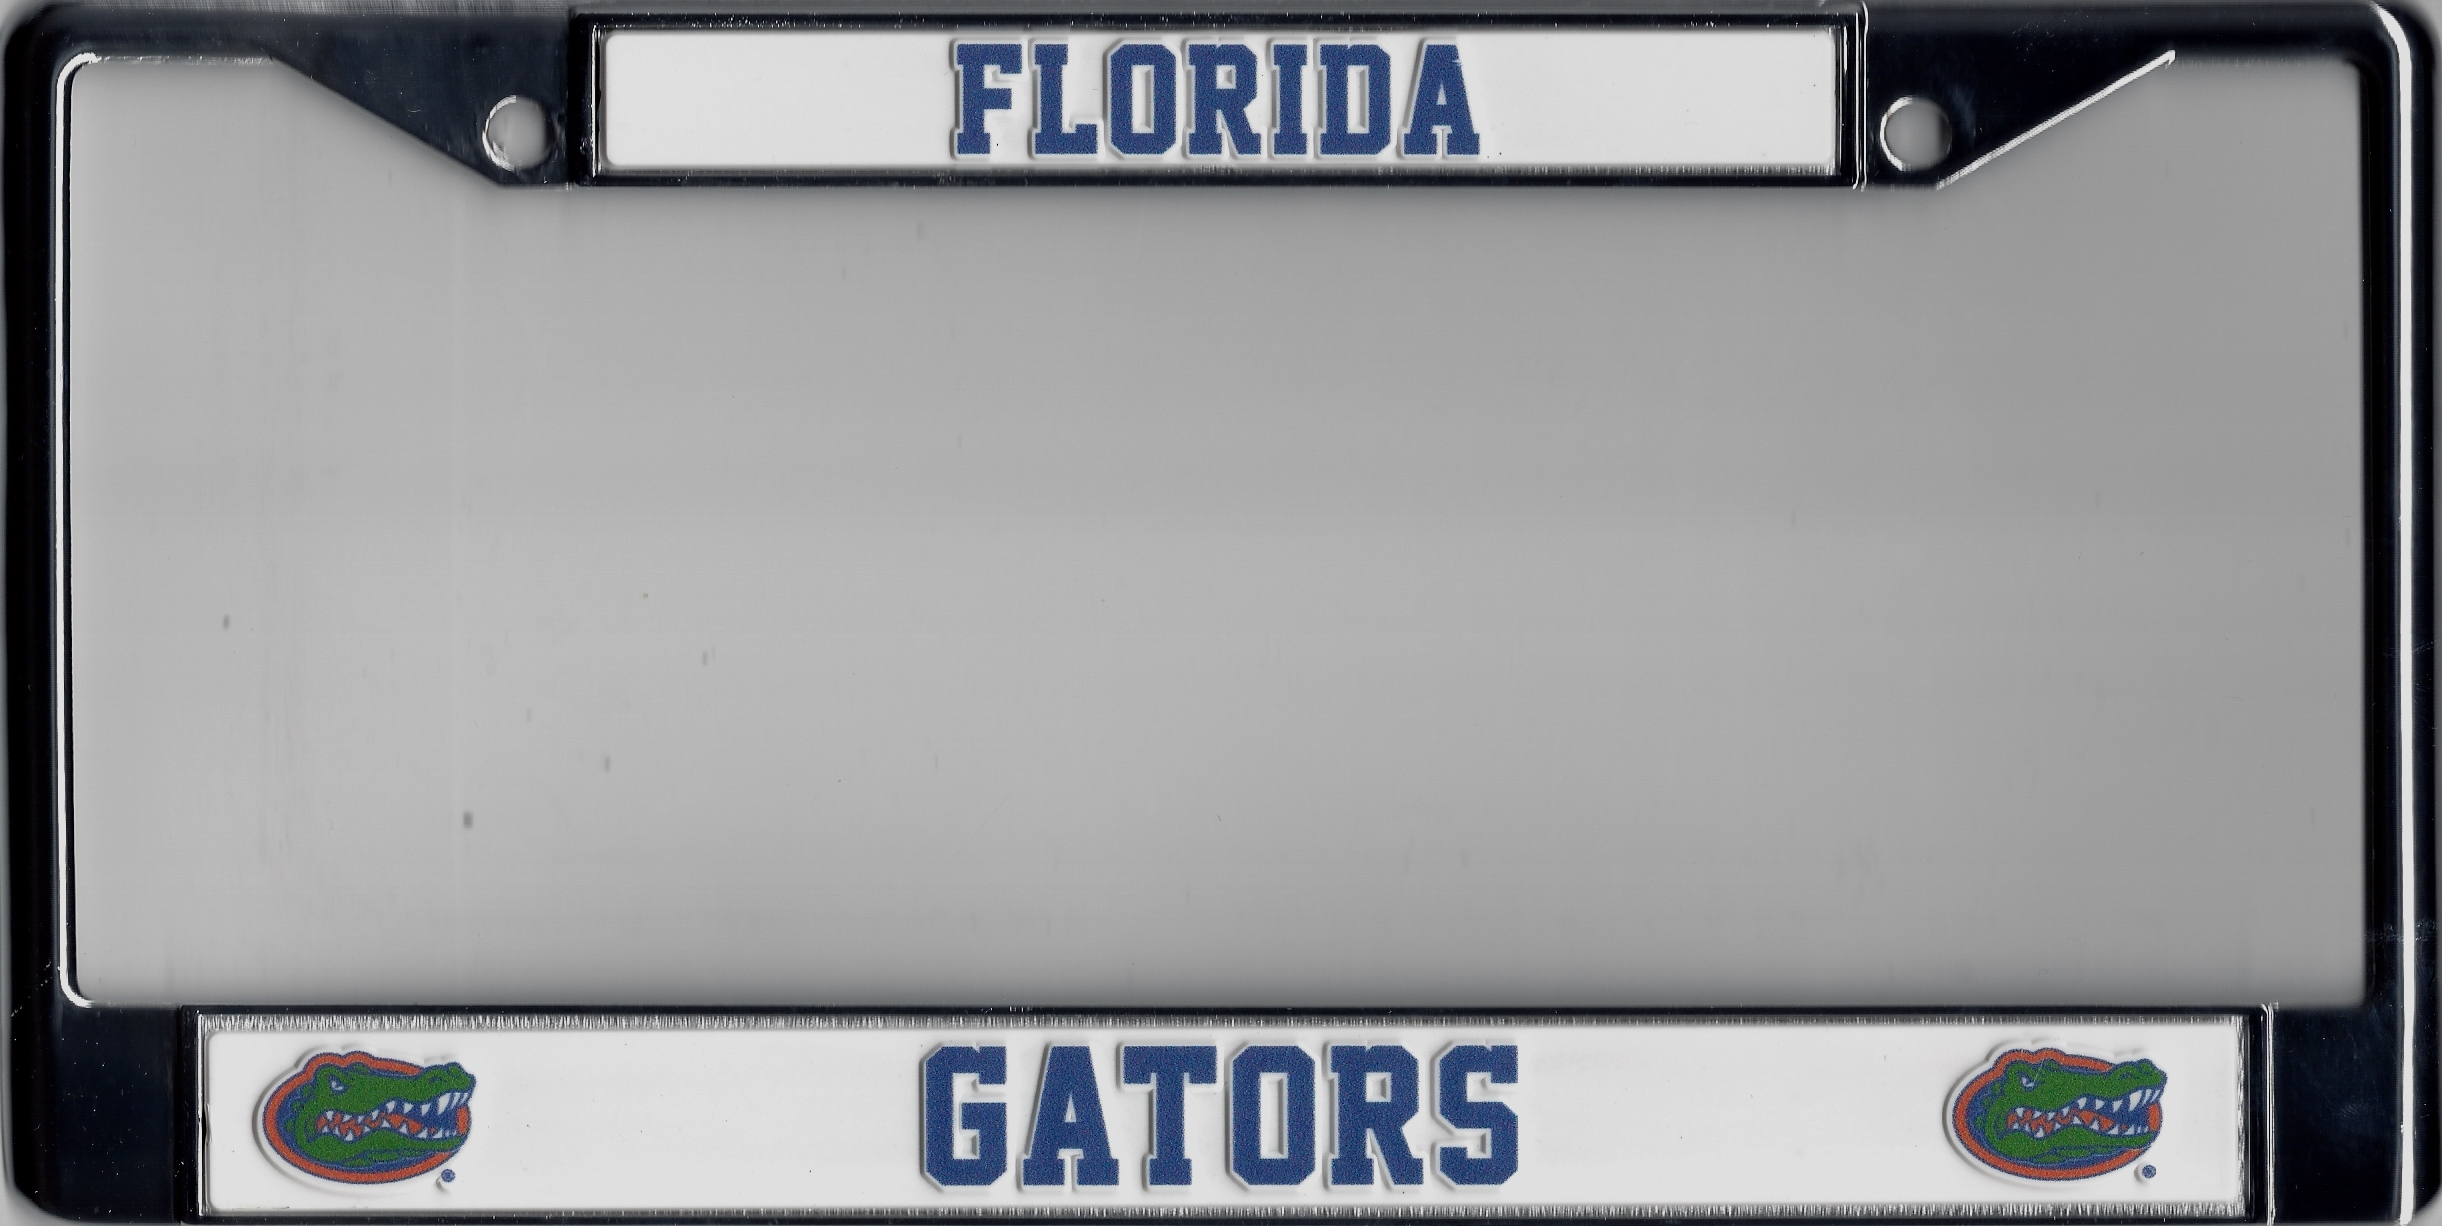 Florida Gators Chrome License Plate Frame Florida Gators Chrome ...